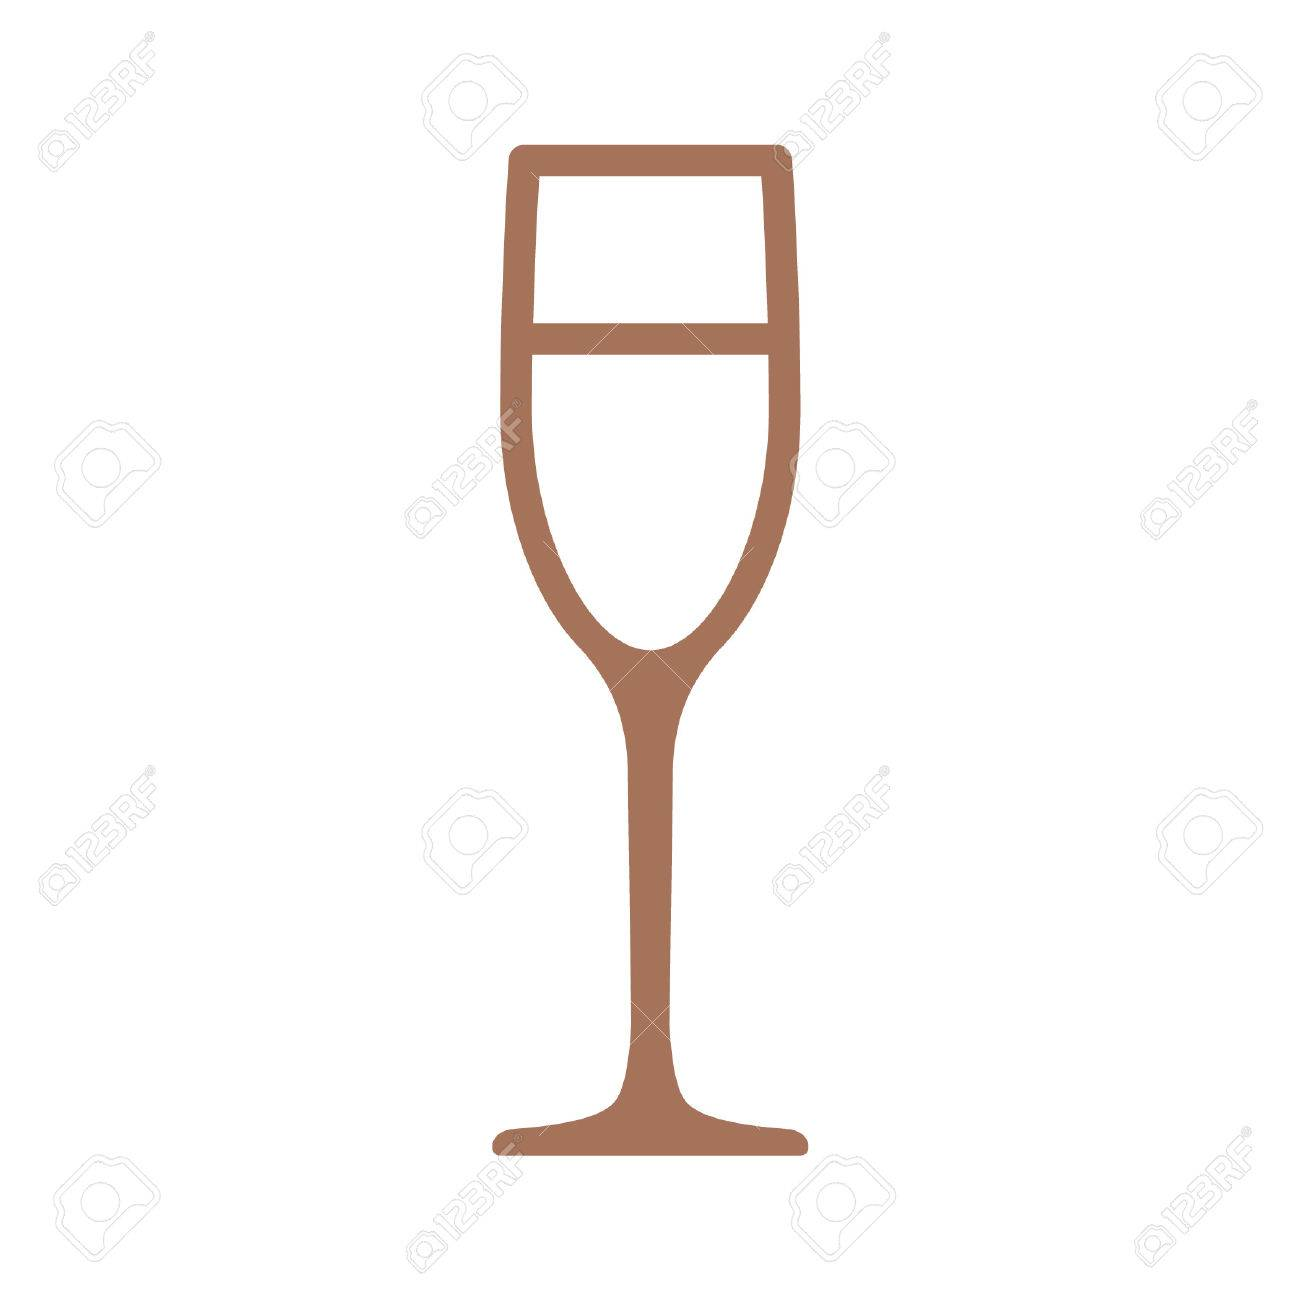 champagne flute glass line art icon for apps and websites royalty rh 123rf com champagne glass clipart free champagne glass clipart jpg